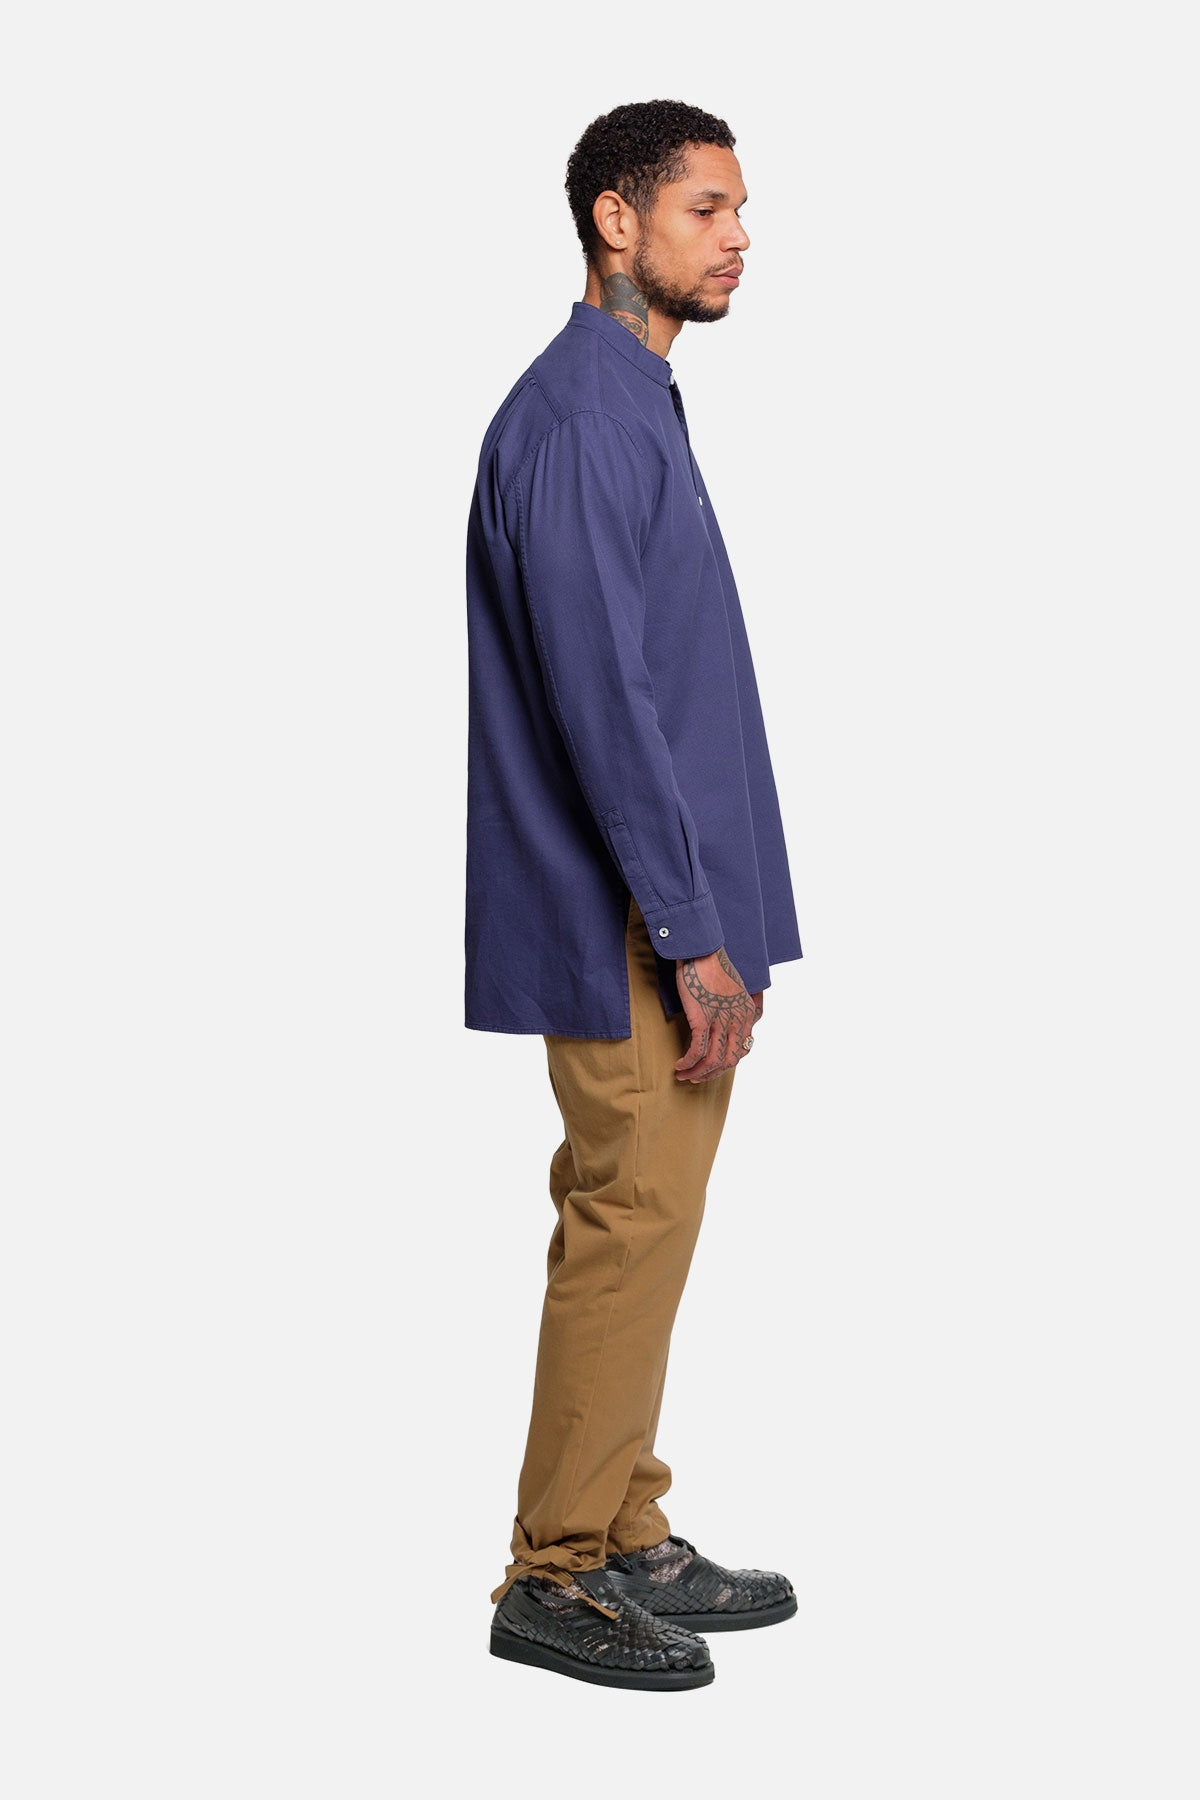 POPOVER TUNIC IN BLUE - Fortune Goods